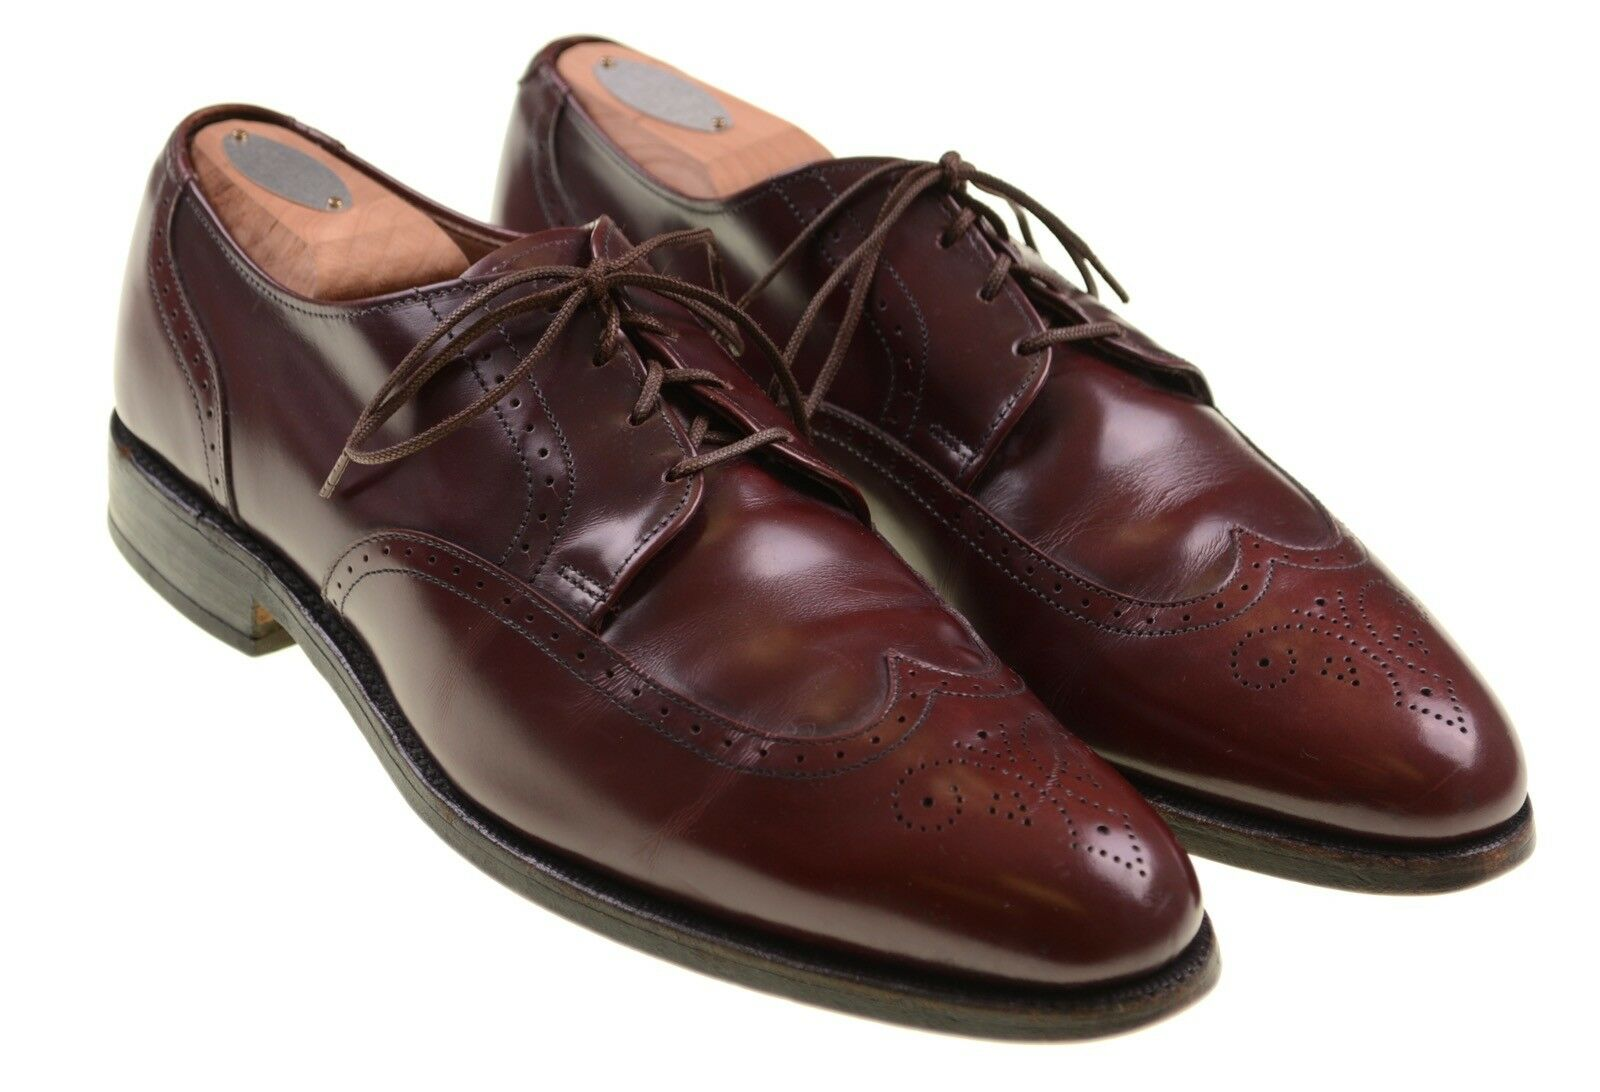 Allen Edmonds Kingswood Burgundy Maroon Leather Wingtip Brogue Dress shoes 9 C